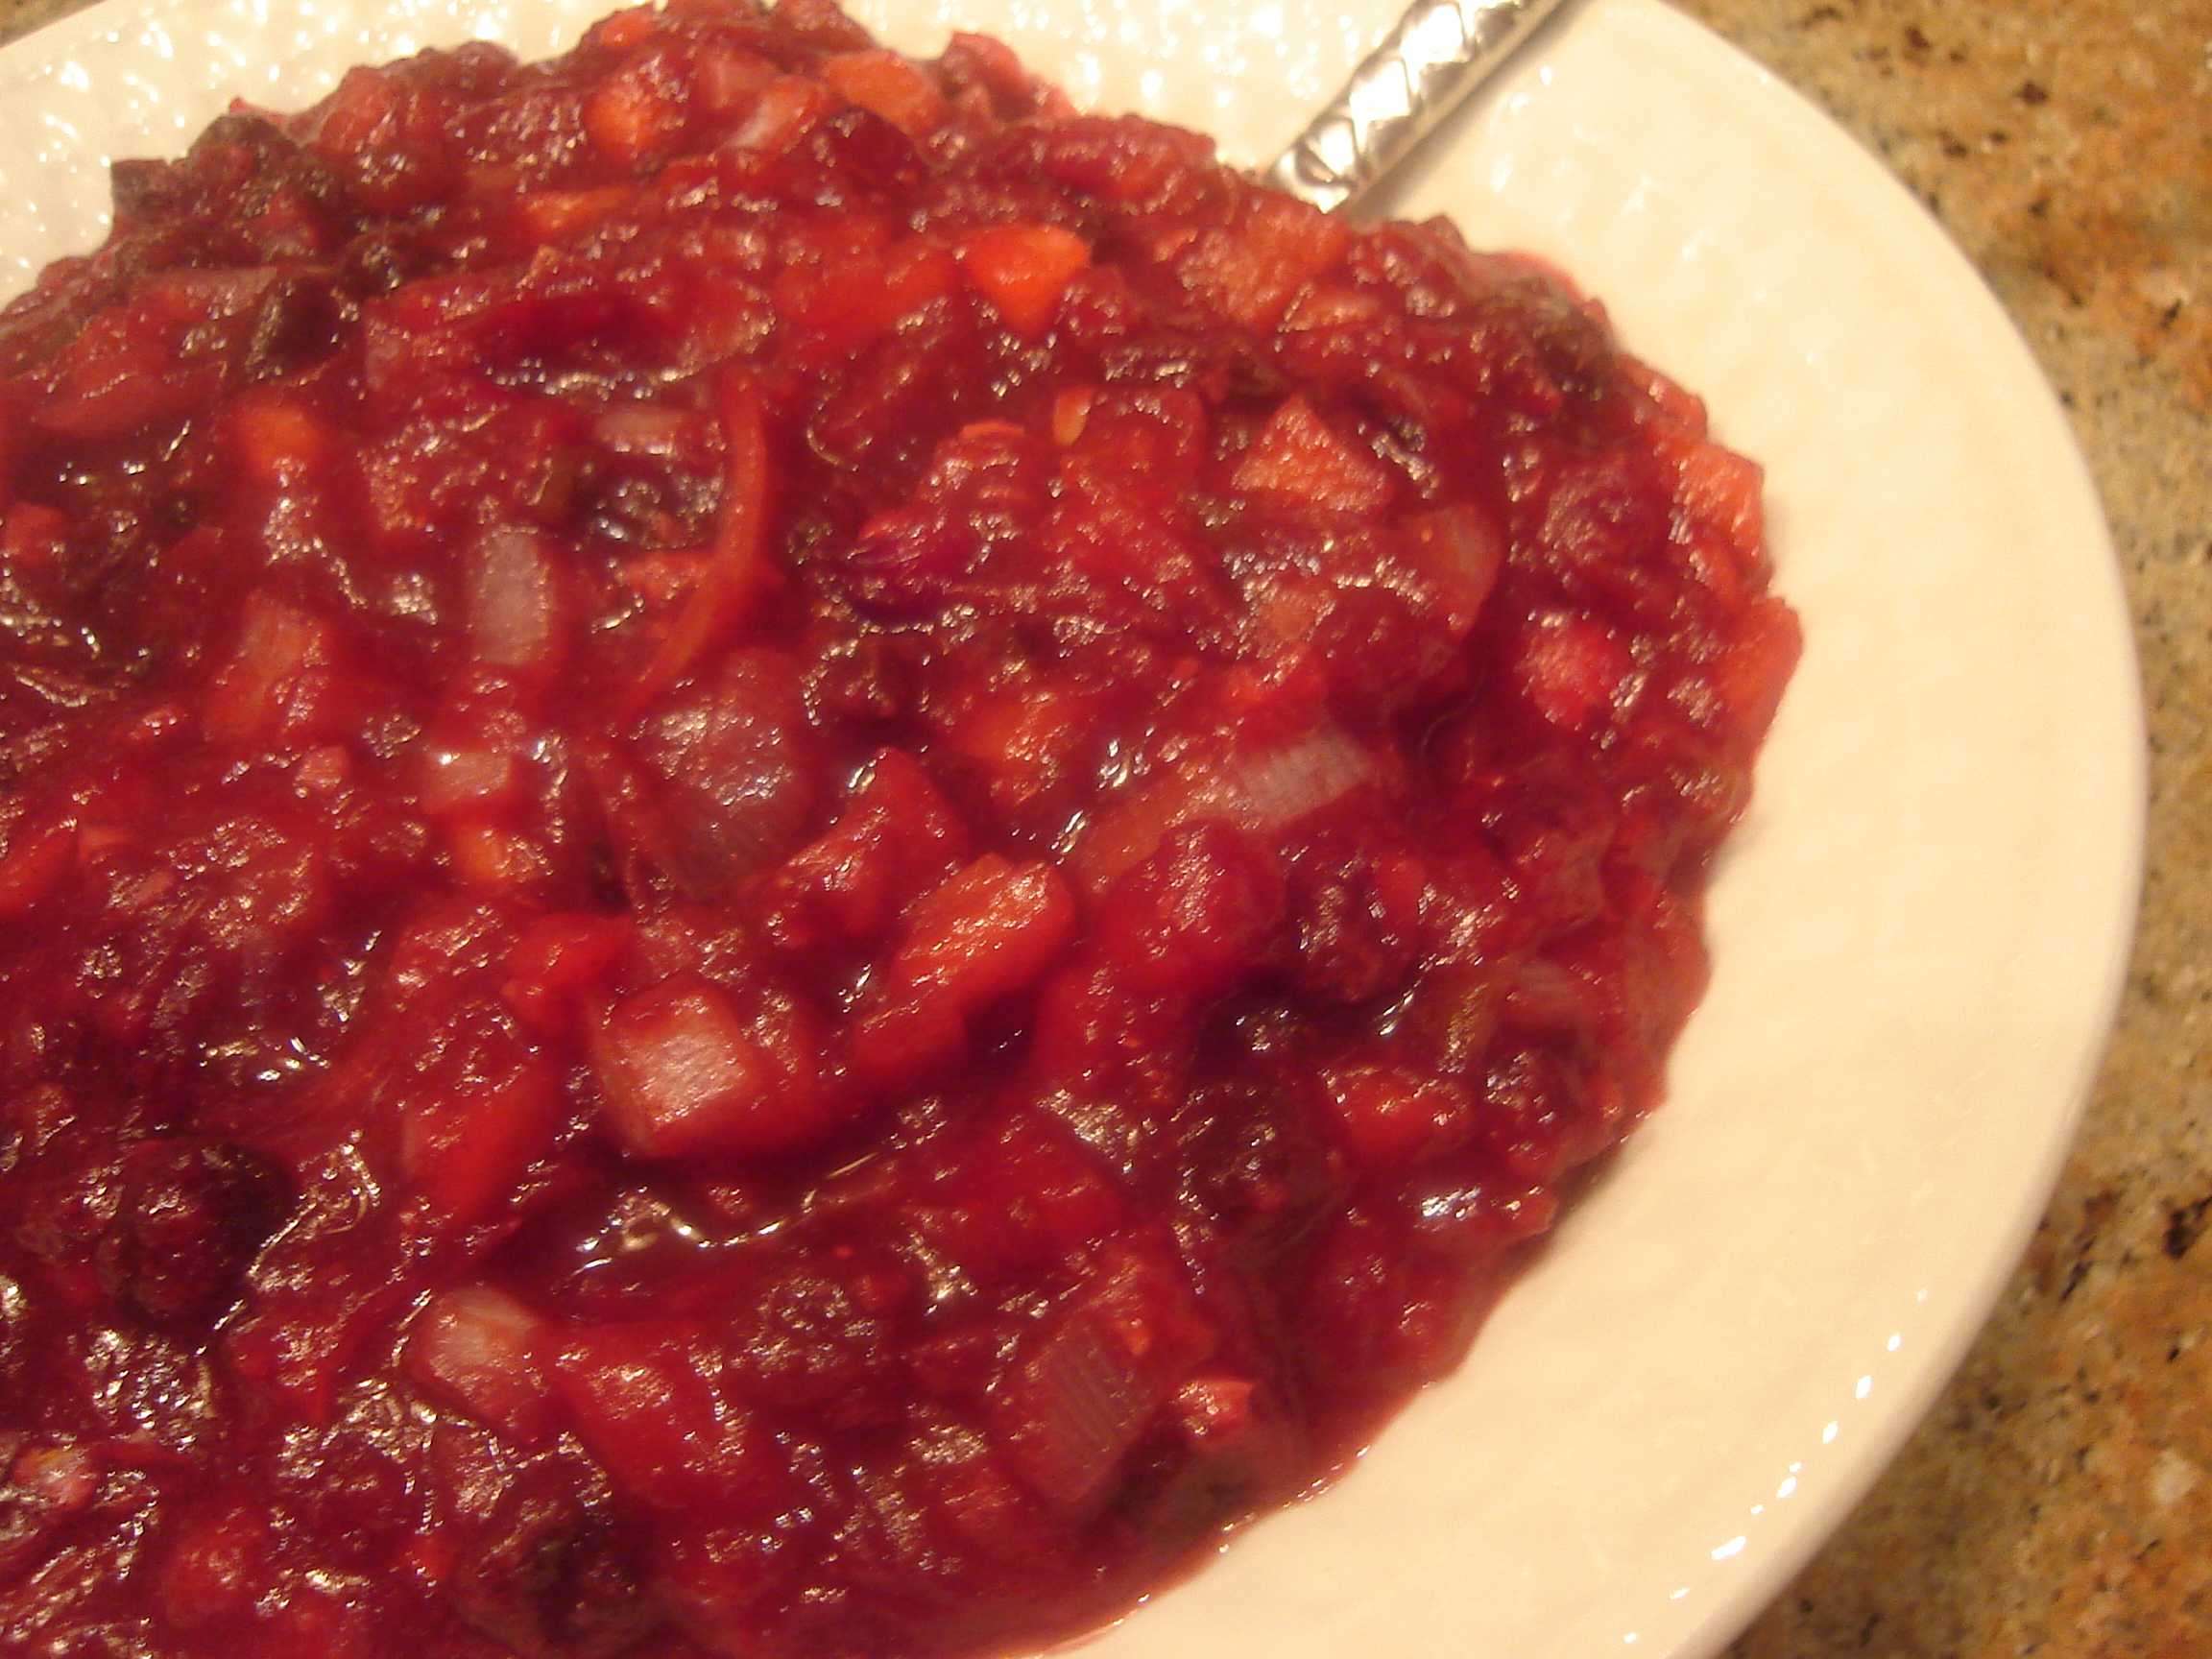 Home » Uncategorized » Cranberry Apple Chutney